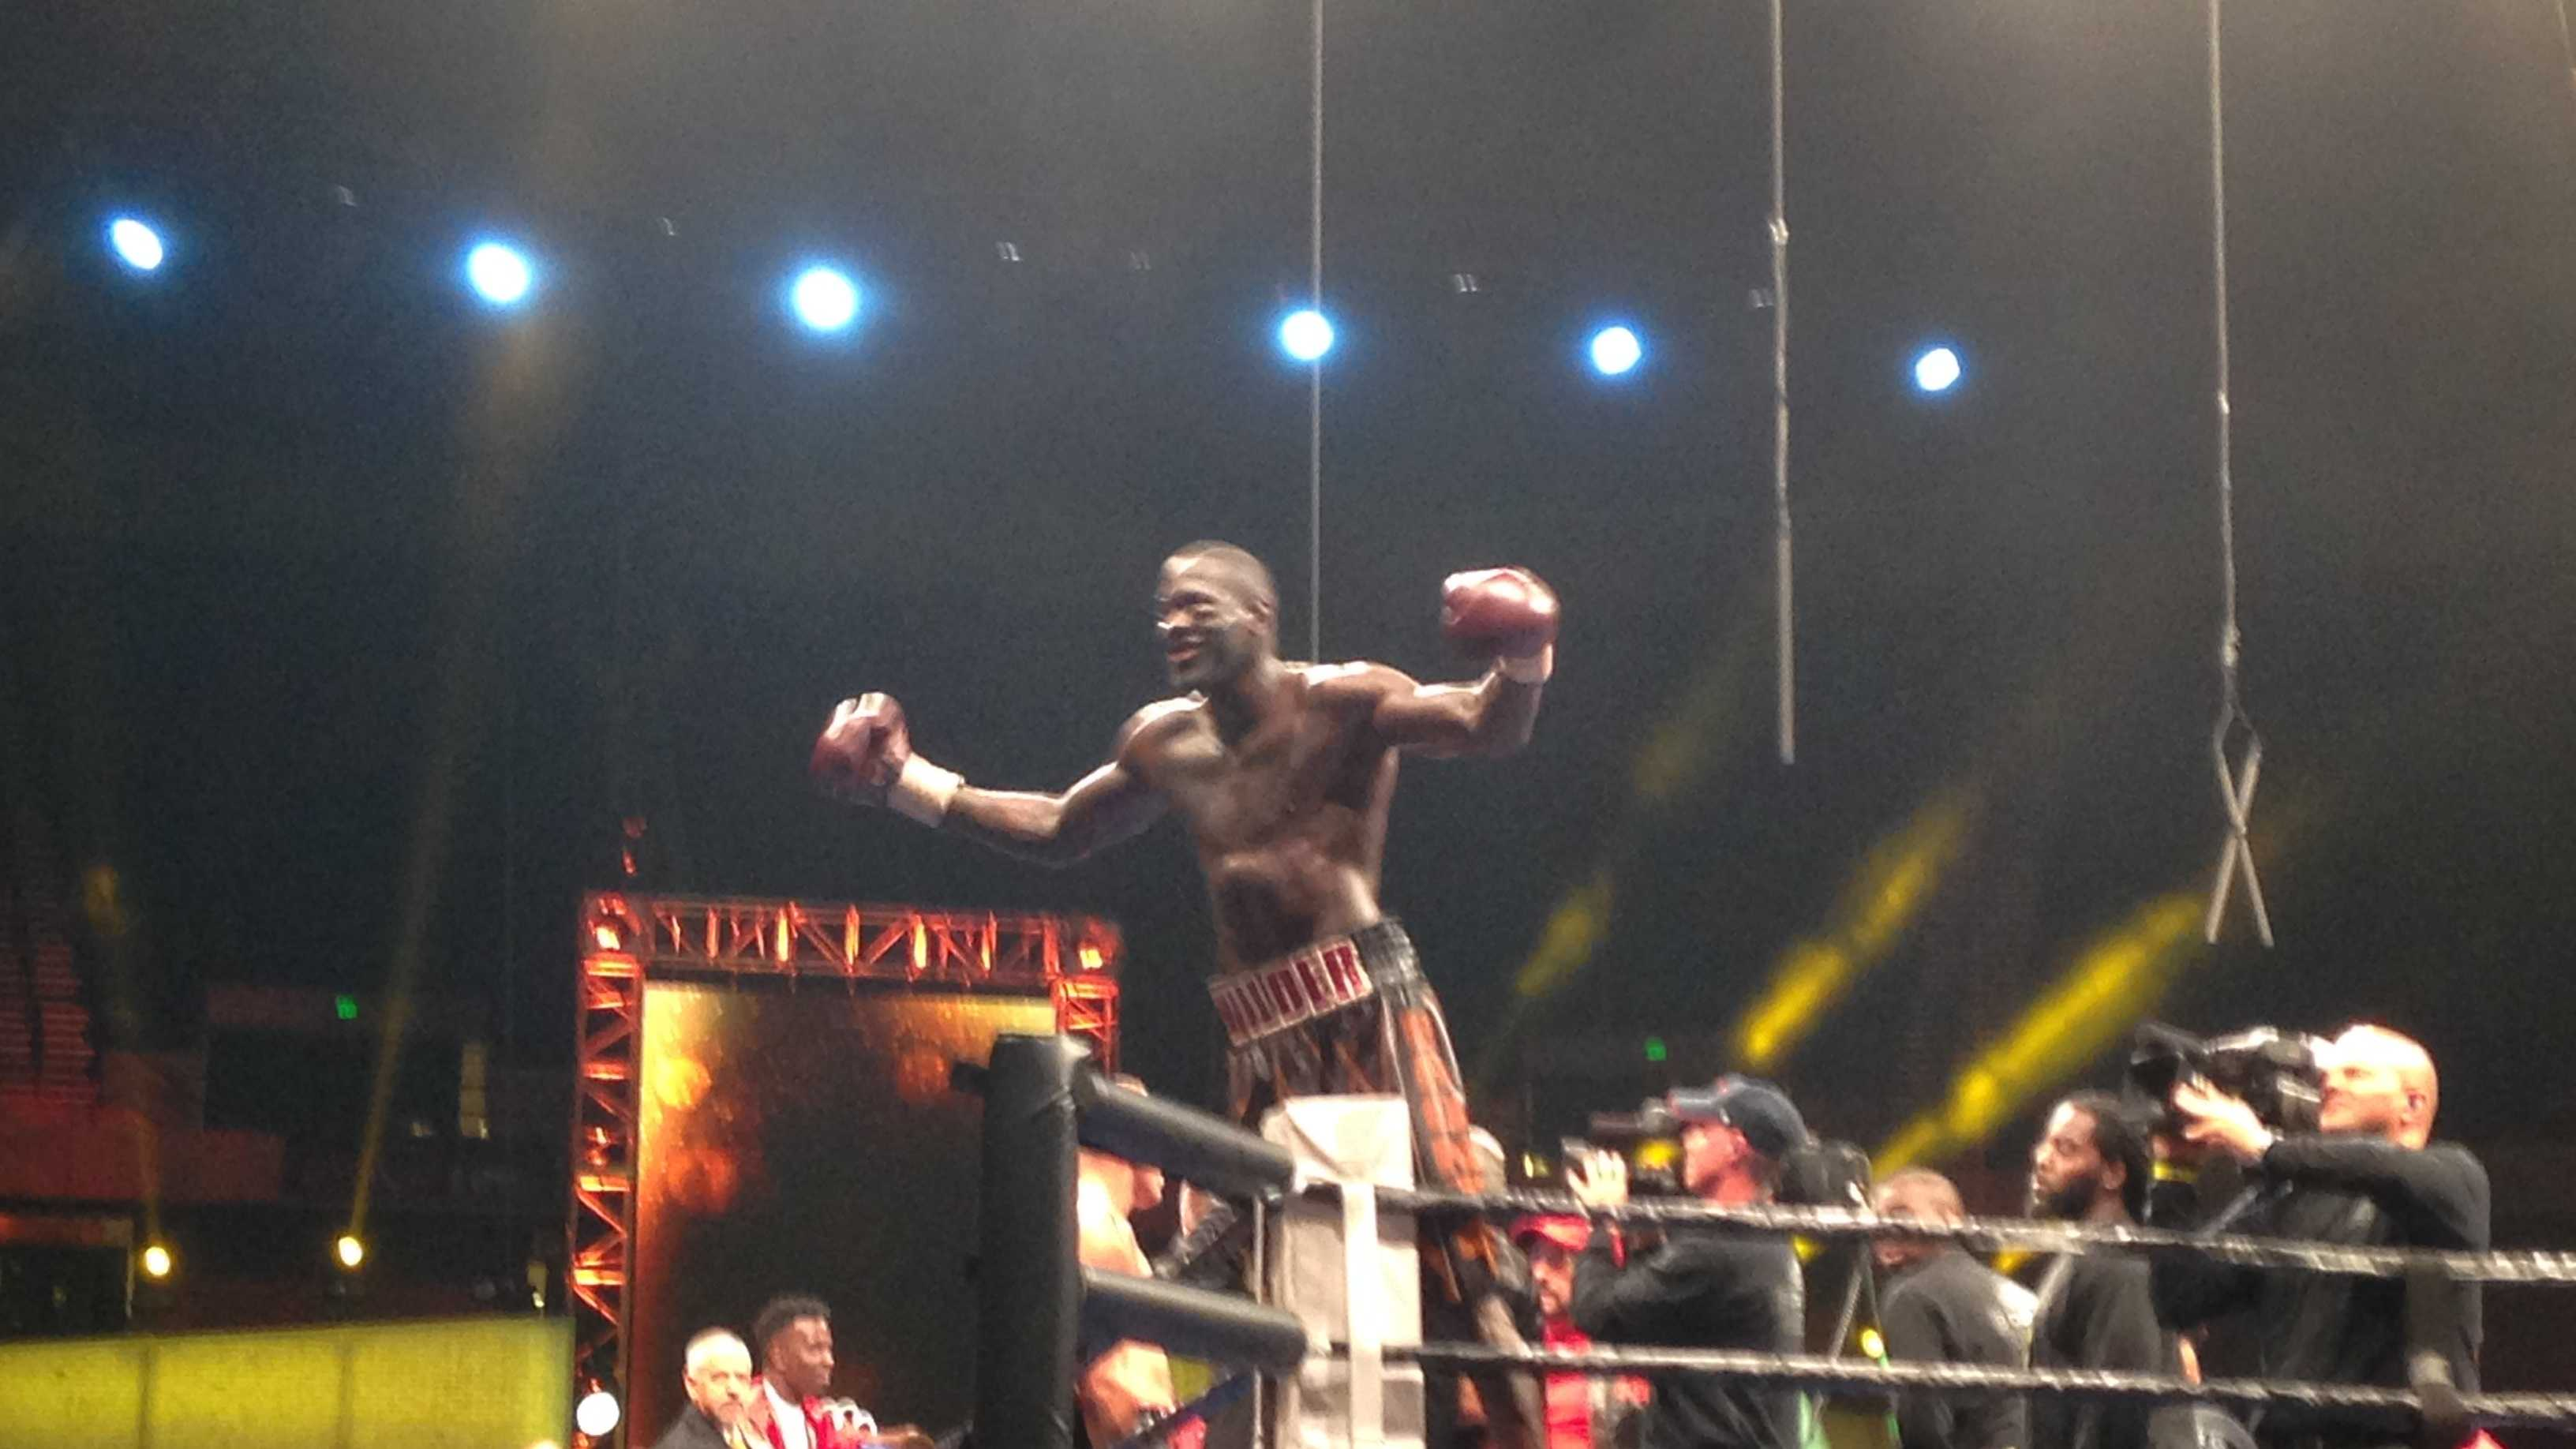 WBC Heavyweight Champion Deontay Wilder defeated Johann Duhaupas Saturday night at the BJCC Legacy Arena.